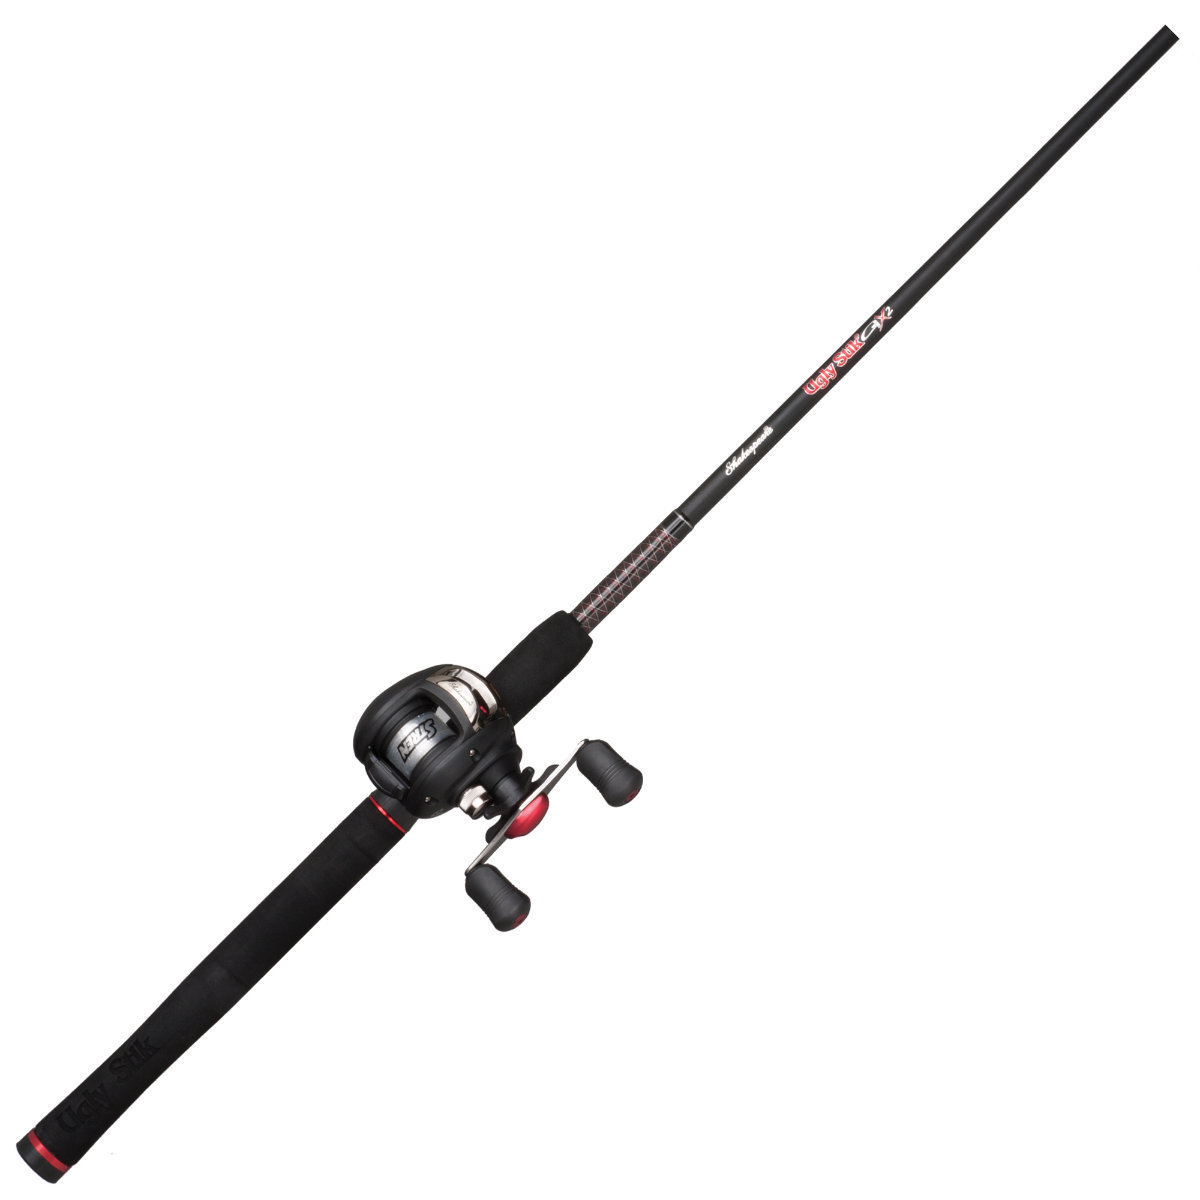 Fishing rod reel baitcast combo shakespeare ugly stik for Shakespeare fishing rod